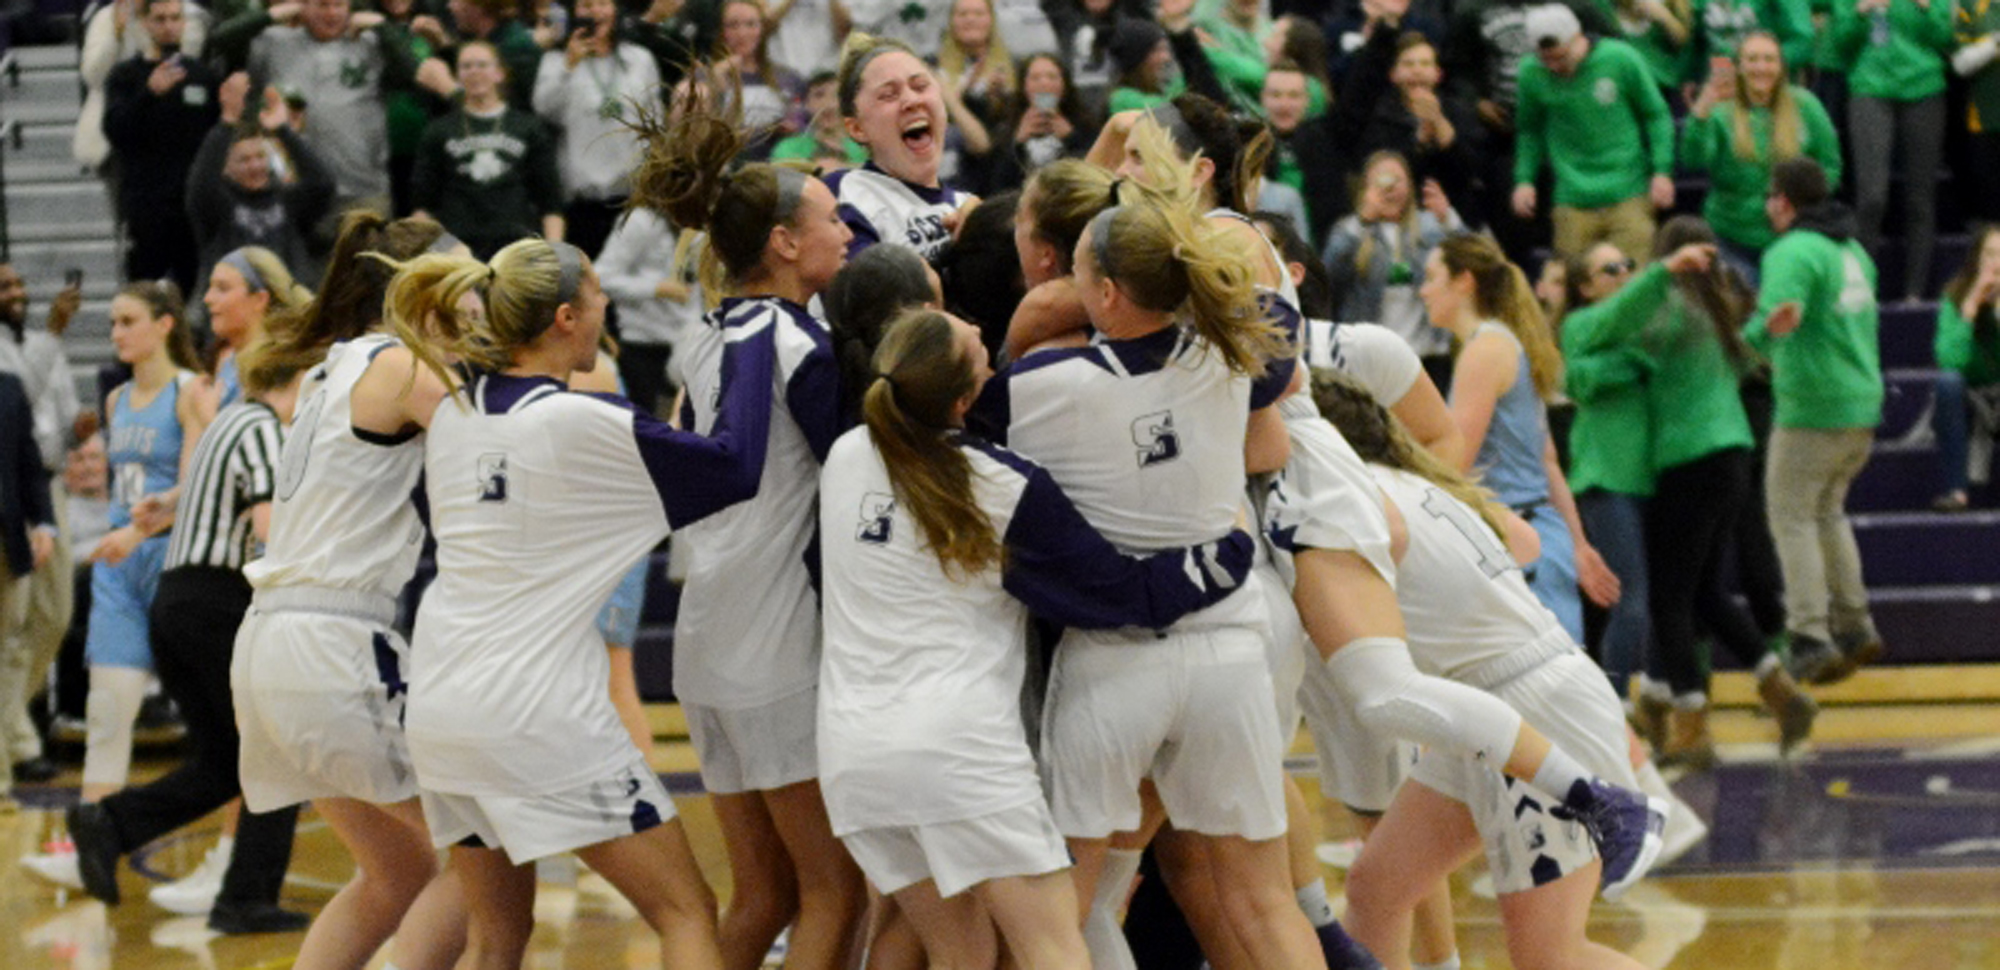 The University of Scranton women's basketball team was picked to repeat as Landmark Conference Champions for a fifth consecutive season.